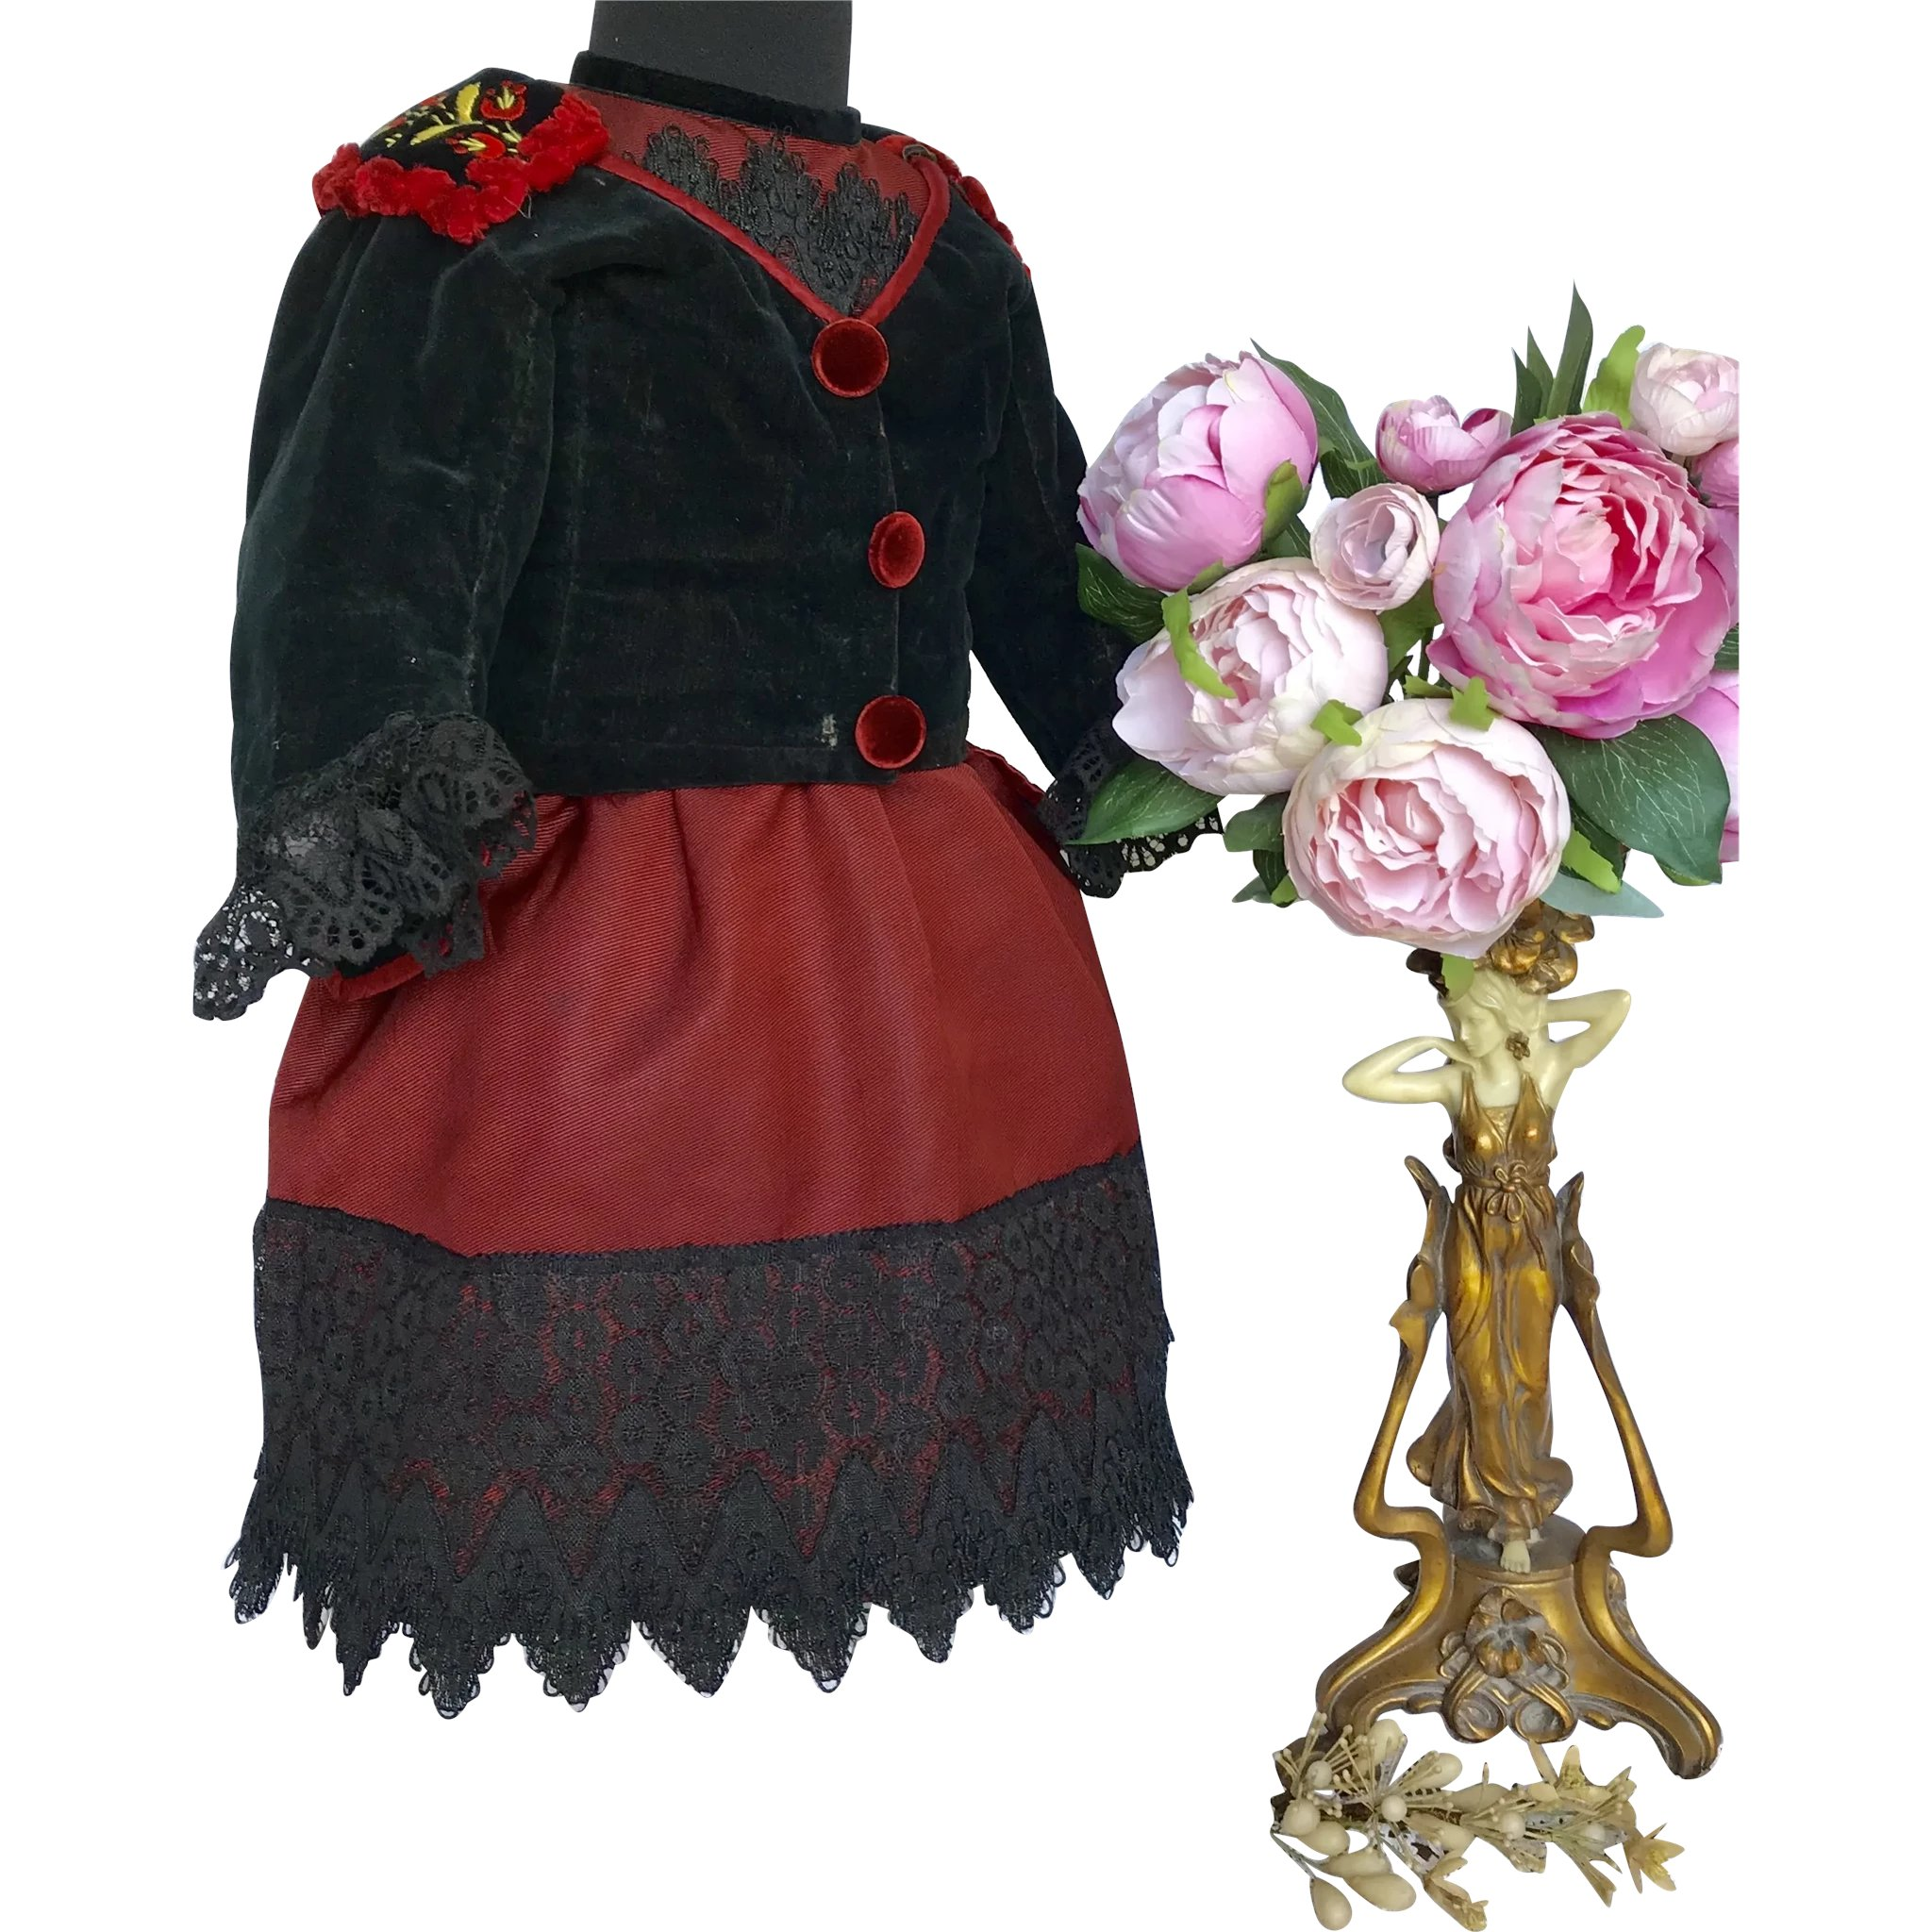 Antique black and red two piece outfit for large bebe  Grandmau0026#39;s parlour | Ruby Lane